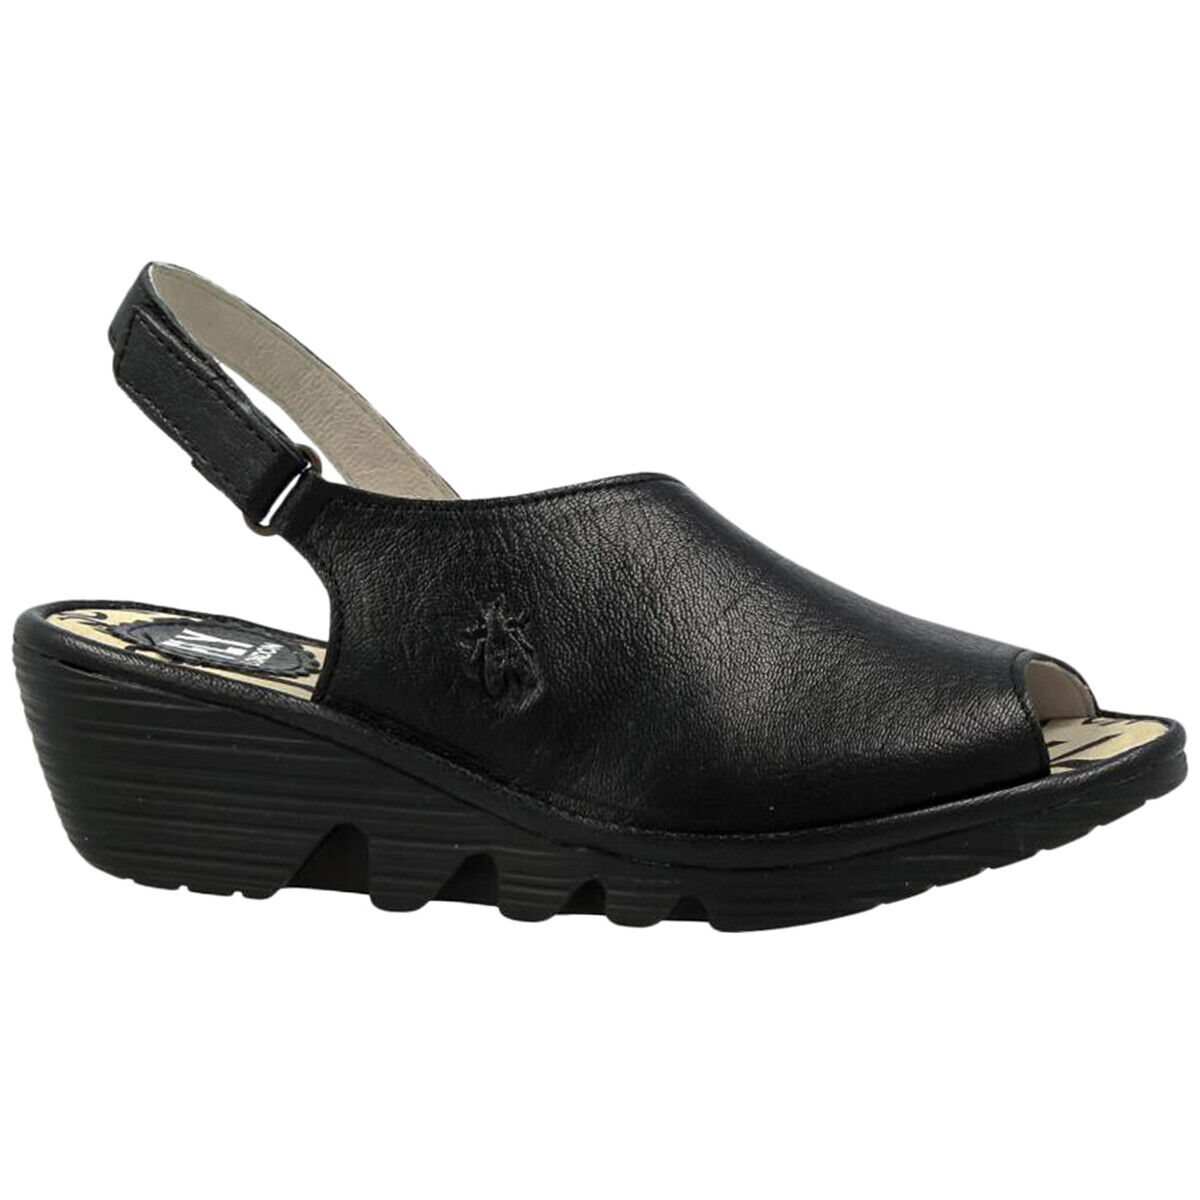 Fly London PALP814FLY Leather Seasonal Adjustable Wedges Womens Sandals